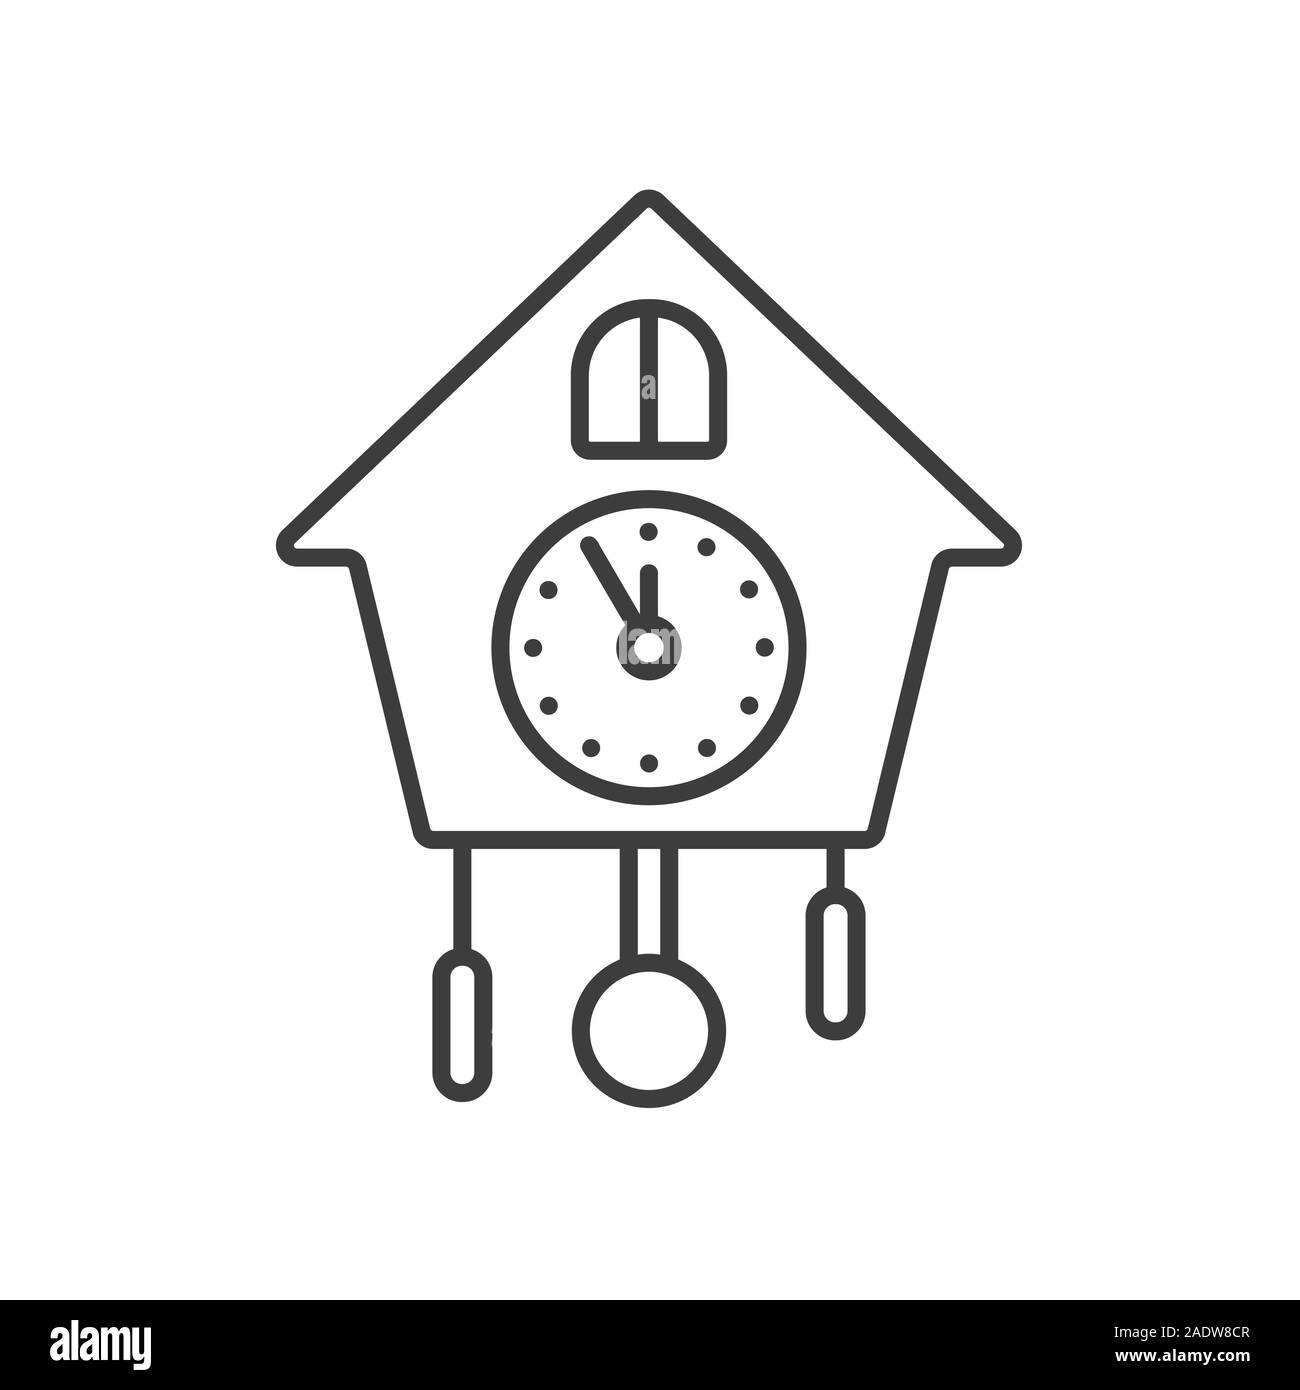 Wall clock linear icon. Thin line illustration. Contour symbol. Vector isolated outline drawing Stock Vector